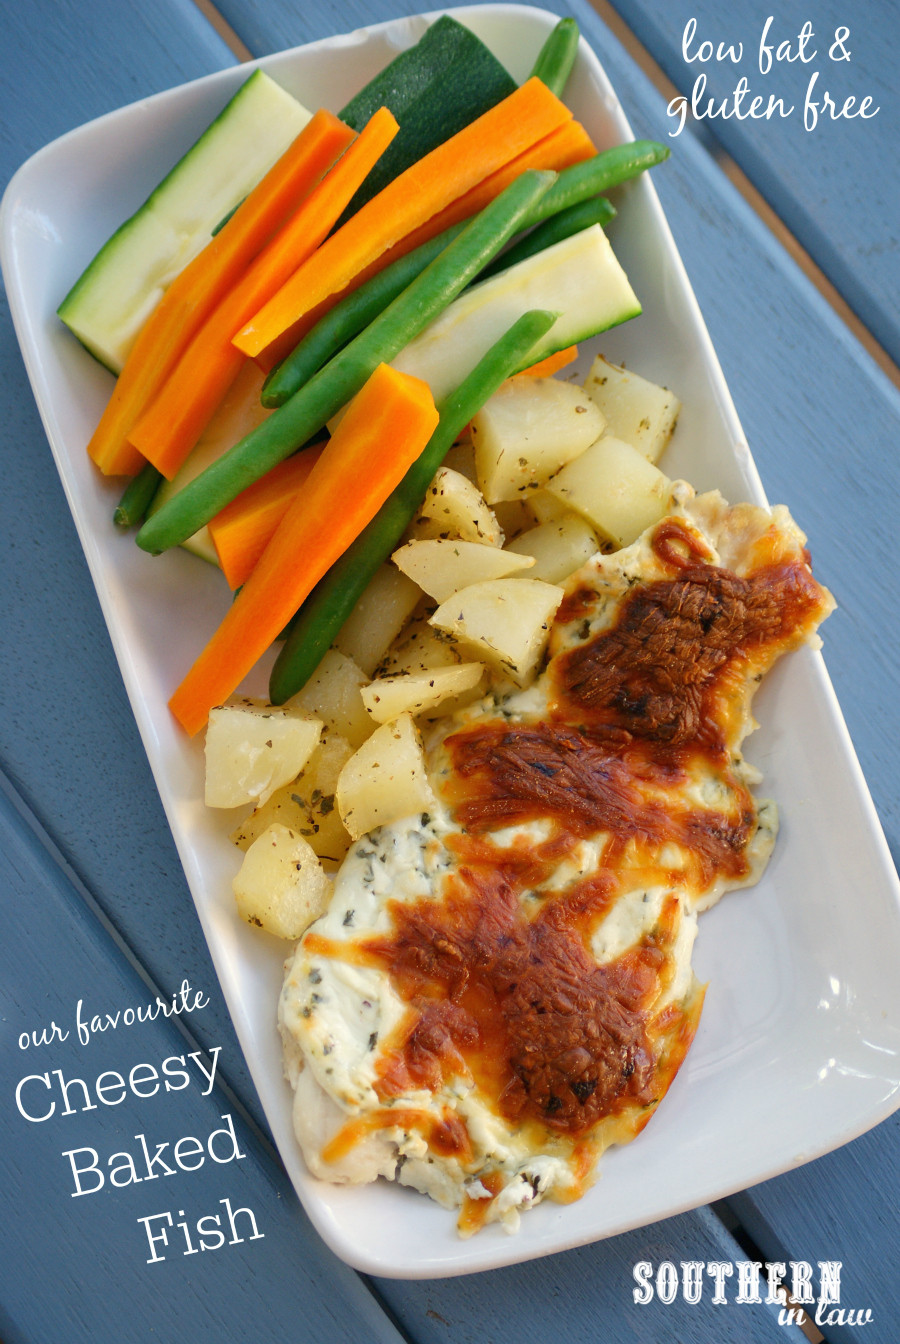 Gluten Free Fish Recipes  Southern In Law Recipe Our Favourite Cheesy Baked Fish